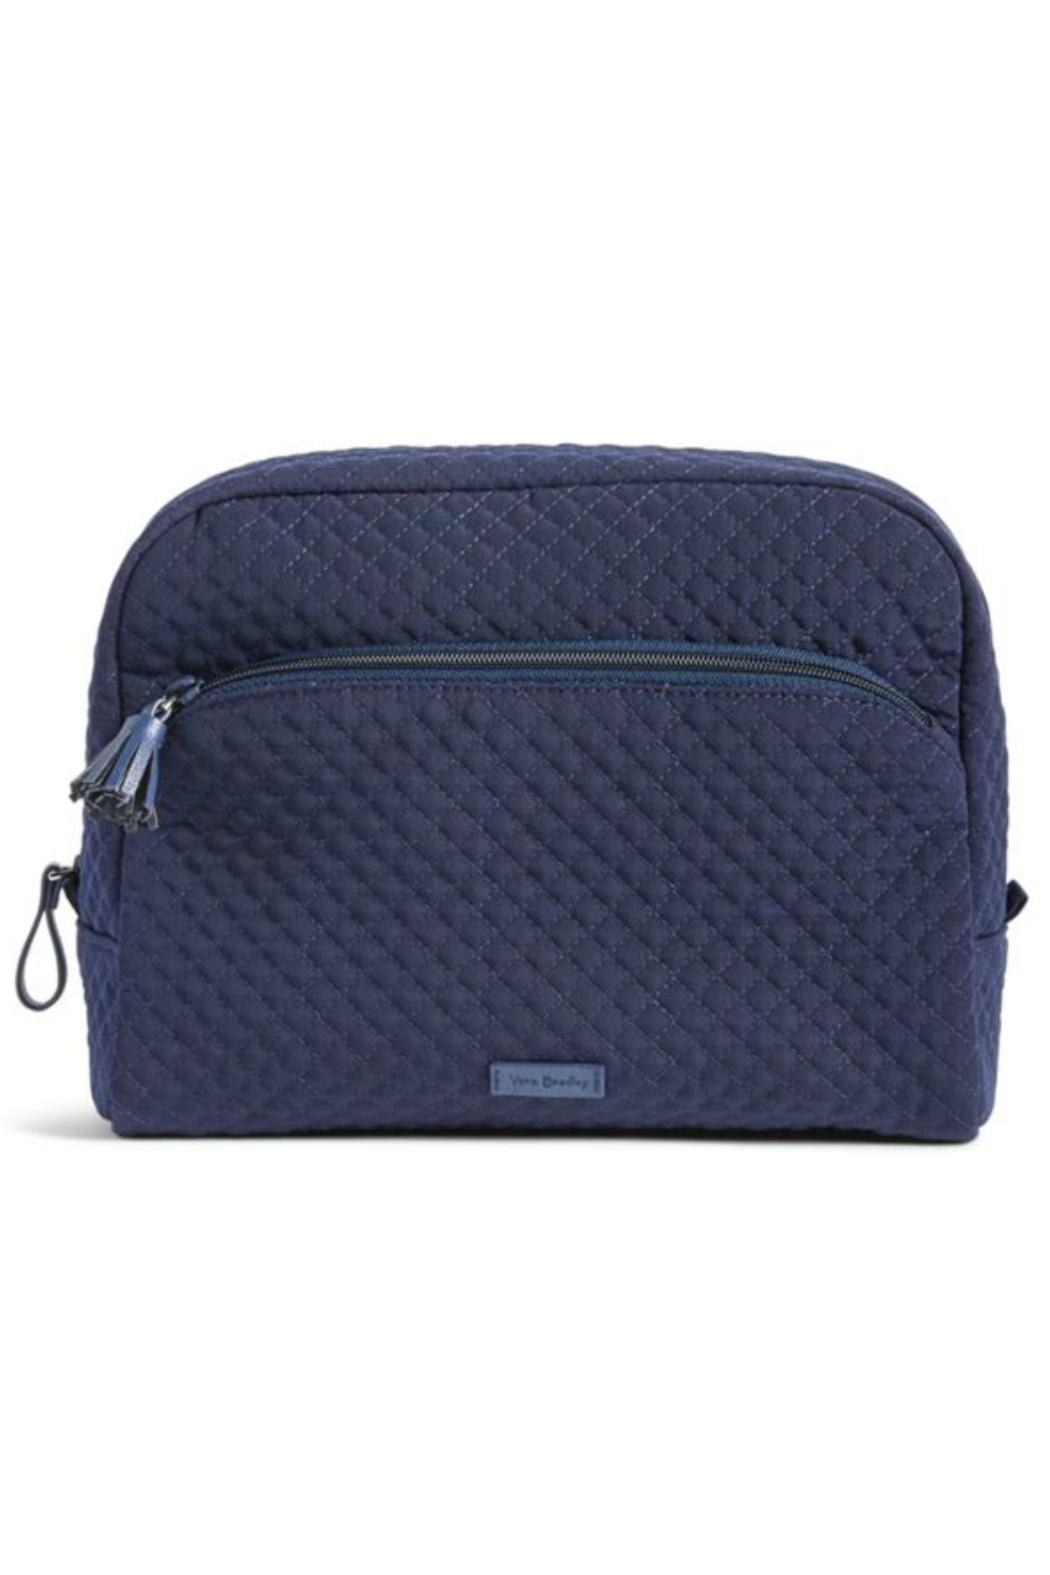 Vera Bradley Large Navy Cosmetic - Front Cropped Image